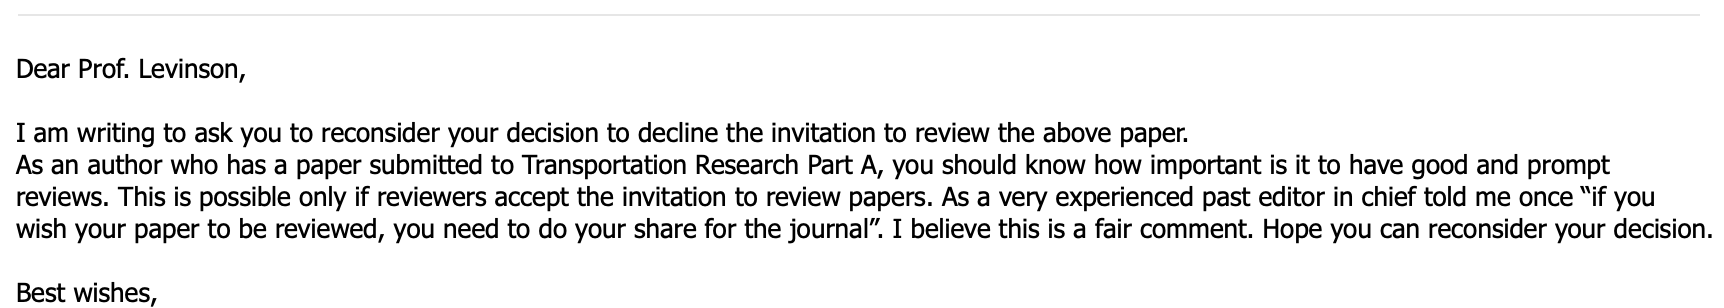 """Dear Prof. Levinson,   I am writing to ask you to reconsider your decision to decline the invitation to review the above paper. As an author who has a paper submitted to Transportation Research Part A, you should know how important is it to have good and prompt reviews. This is possible only if reviewers accept the invitation to review papers. As a very experienced past editor in chief told me once """"if you wish your paper to be reviewed, you need to do your share for the journal"""". I believe this is a fair comment. Hope you can reconsider your decision.   Best wishes,"""